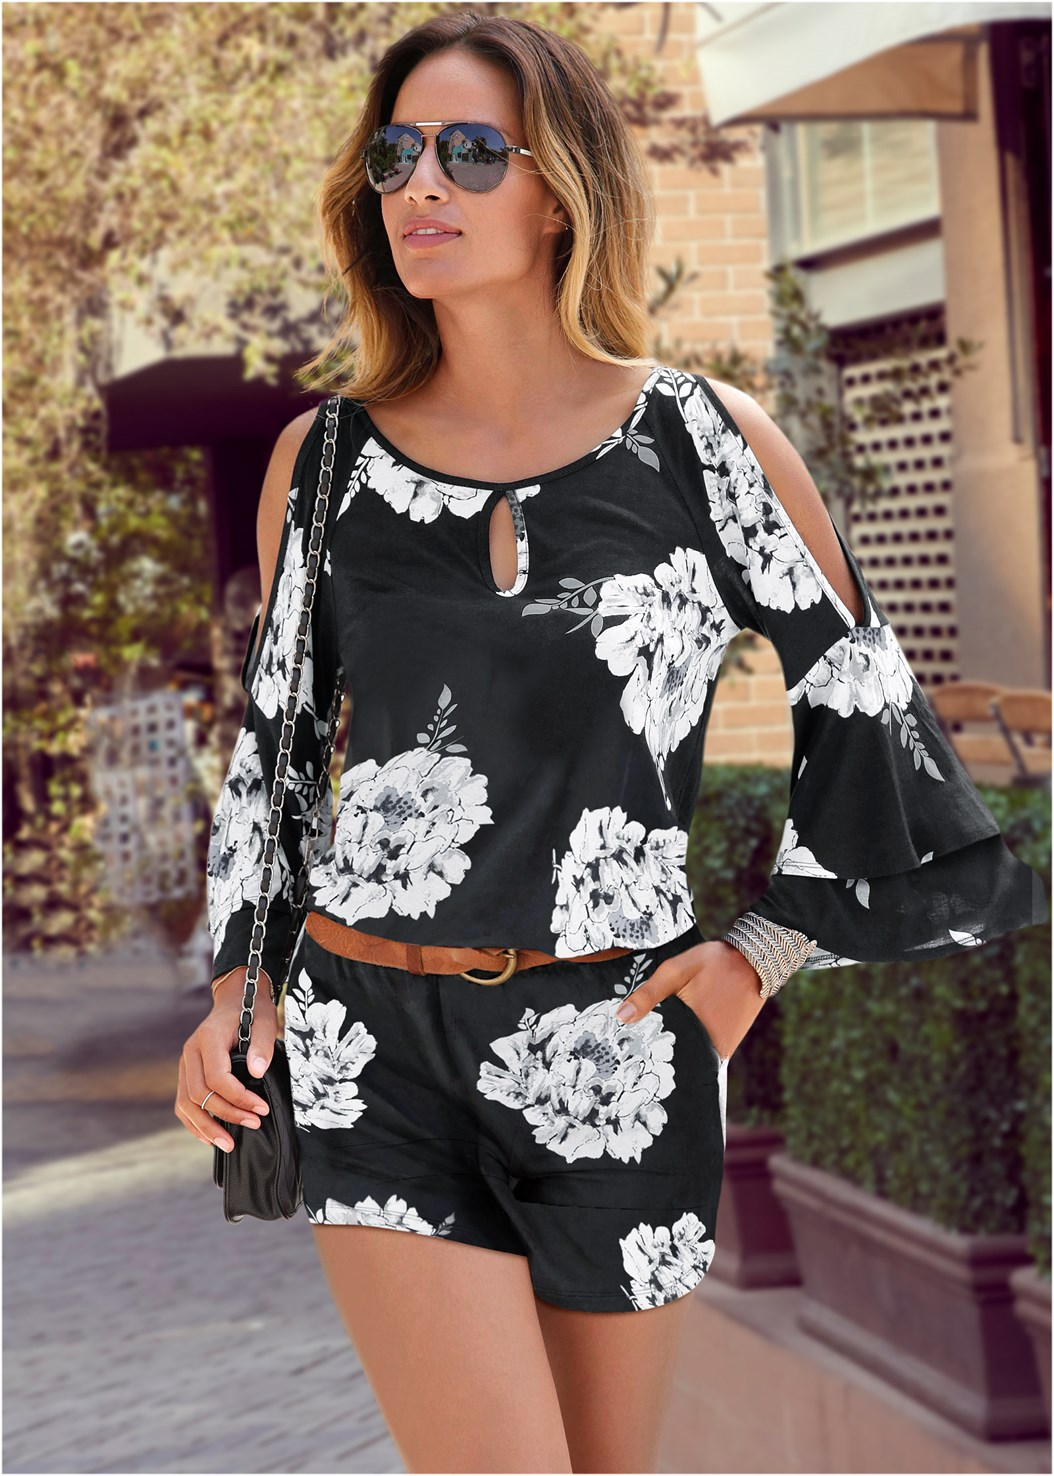 Cold Shoulder Floral Romper,Strapless Bra With Geo Lace,Peep Toe Booties,Studded Matte Hoops